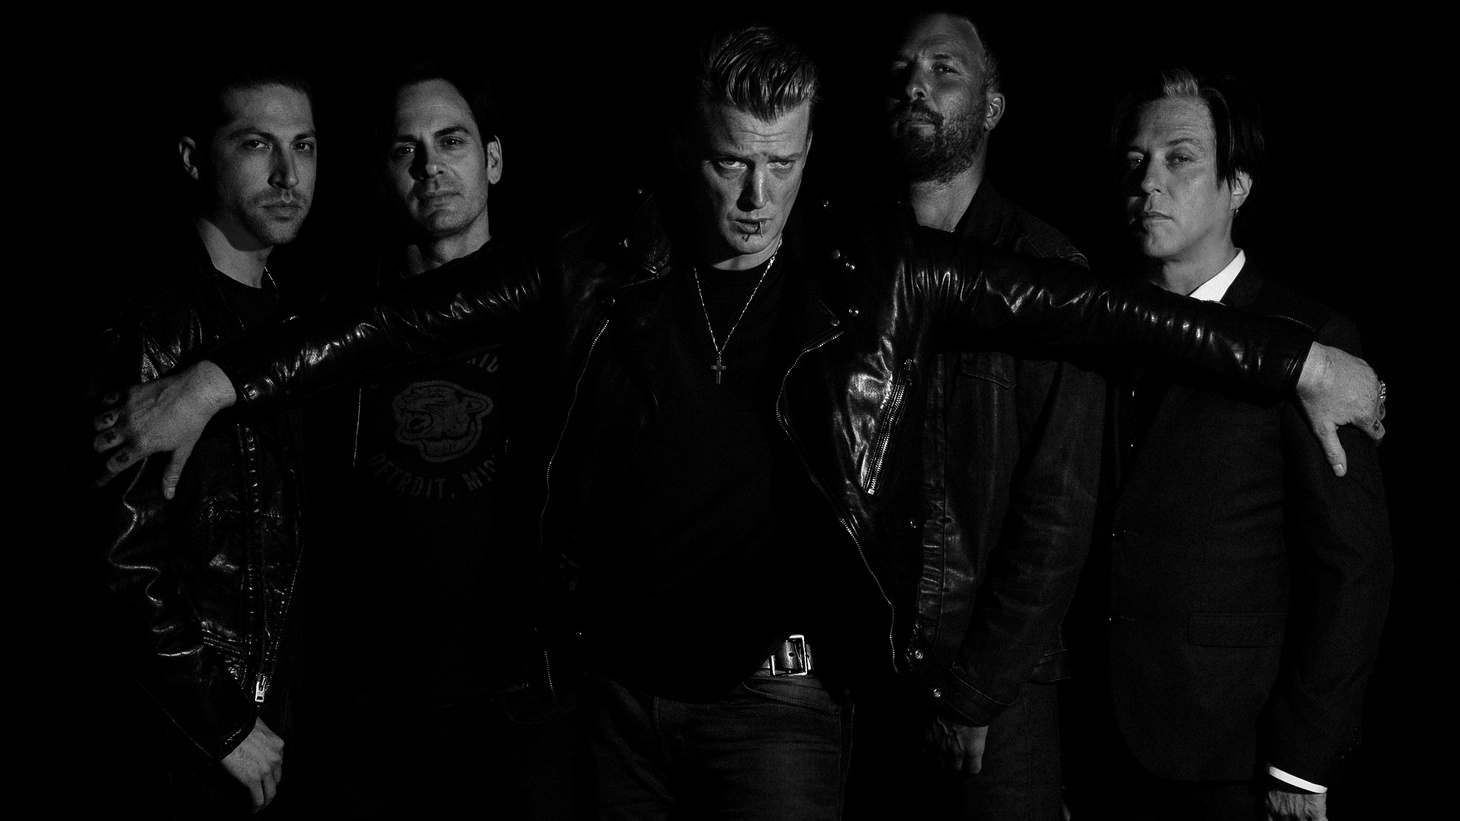 Queens of the Stone Age are back with a new album, Villains. It's glammy, groovy and packs the rock 'n' roll punch we've come to expect from Josh Homme and company.